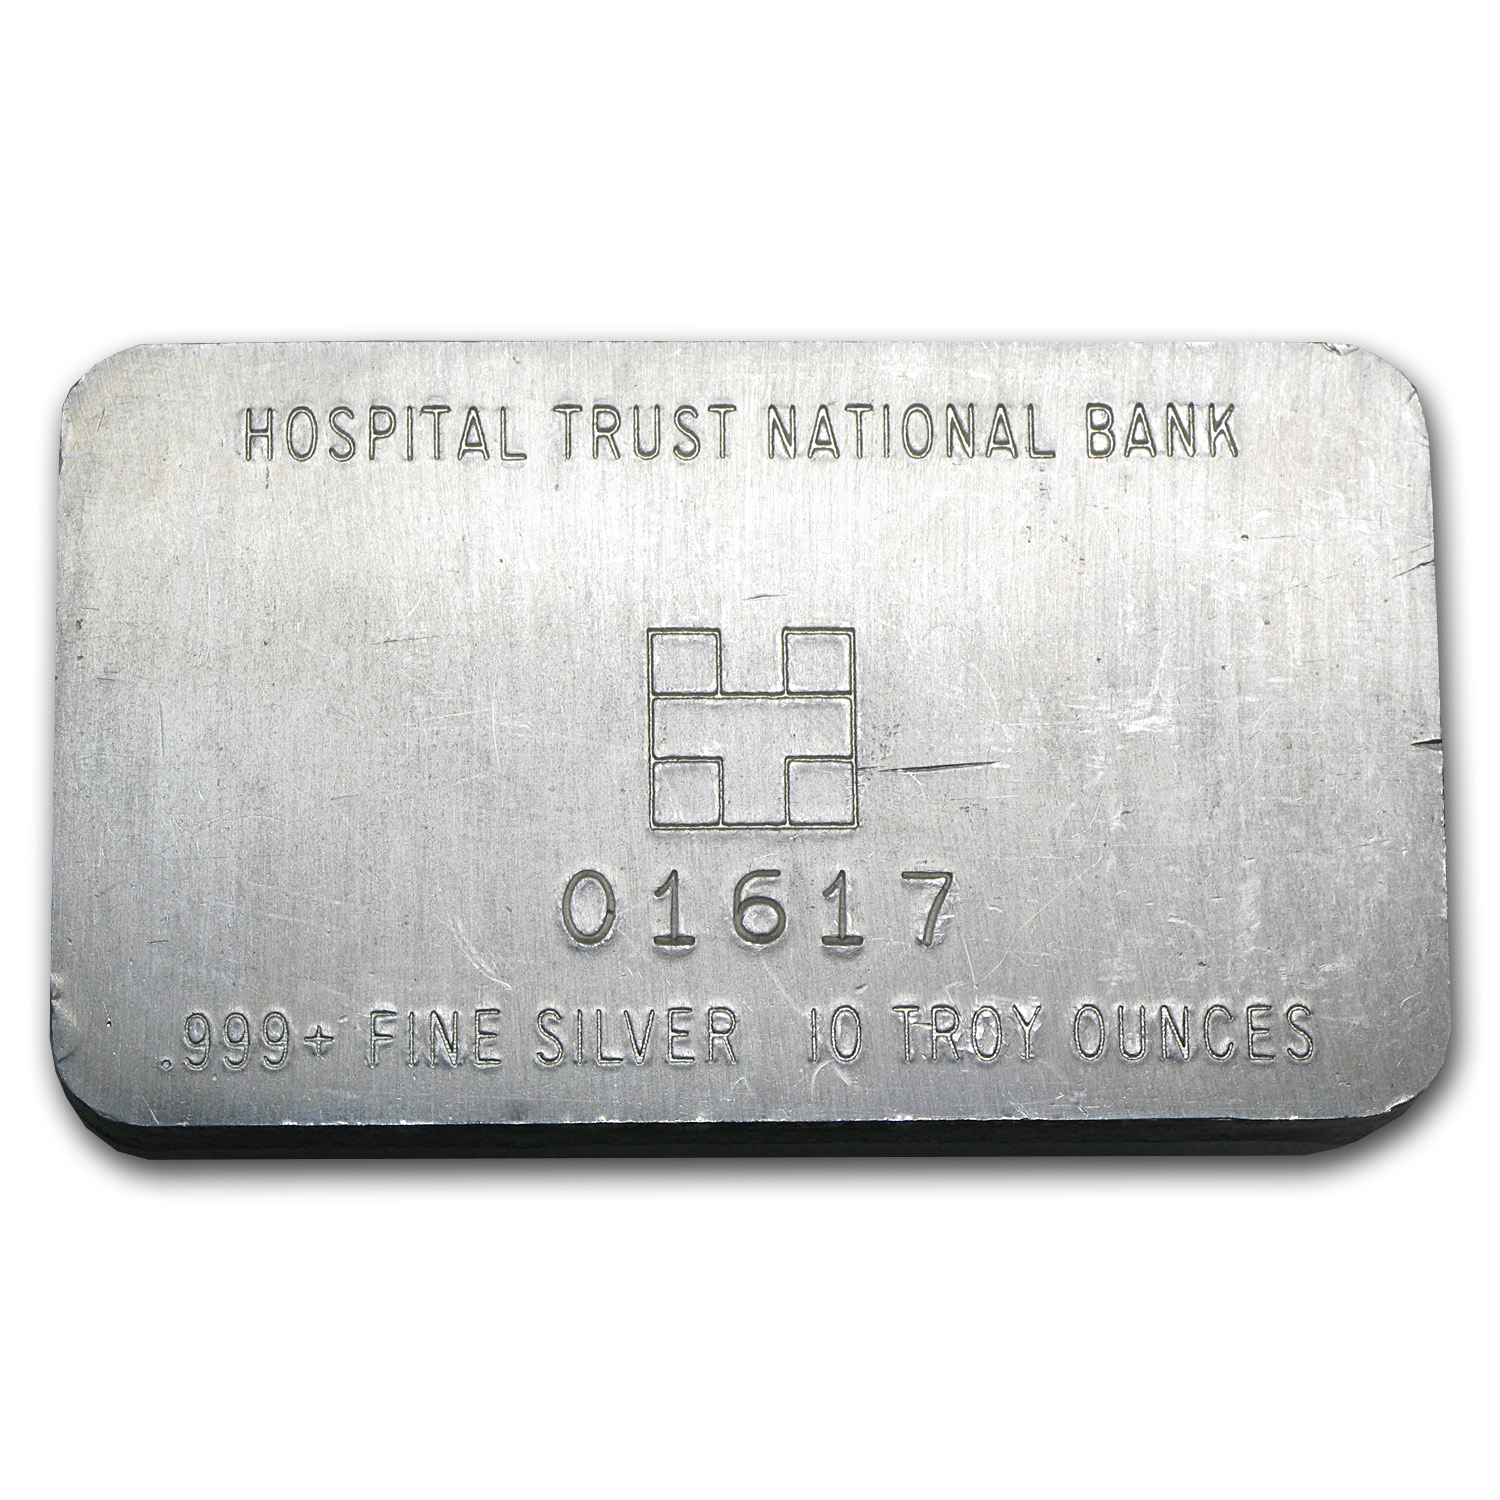 10 oz Silver Bars - Hospital Trust National Bank (Pressed)